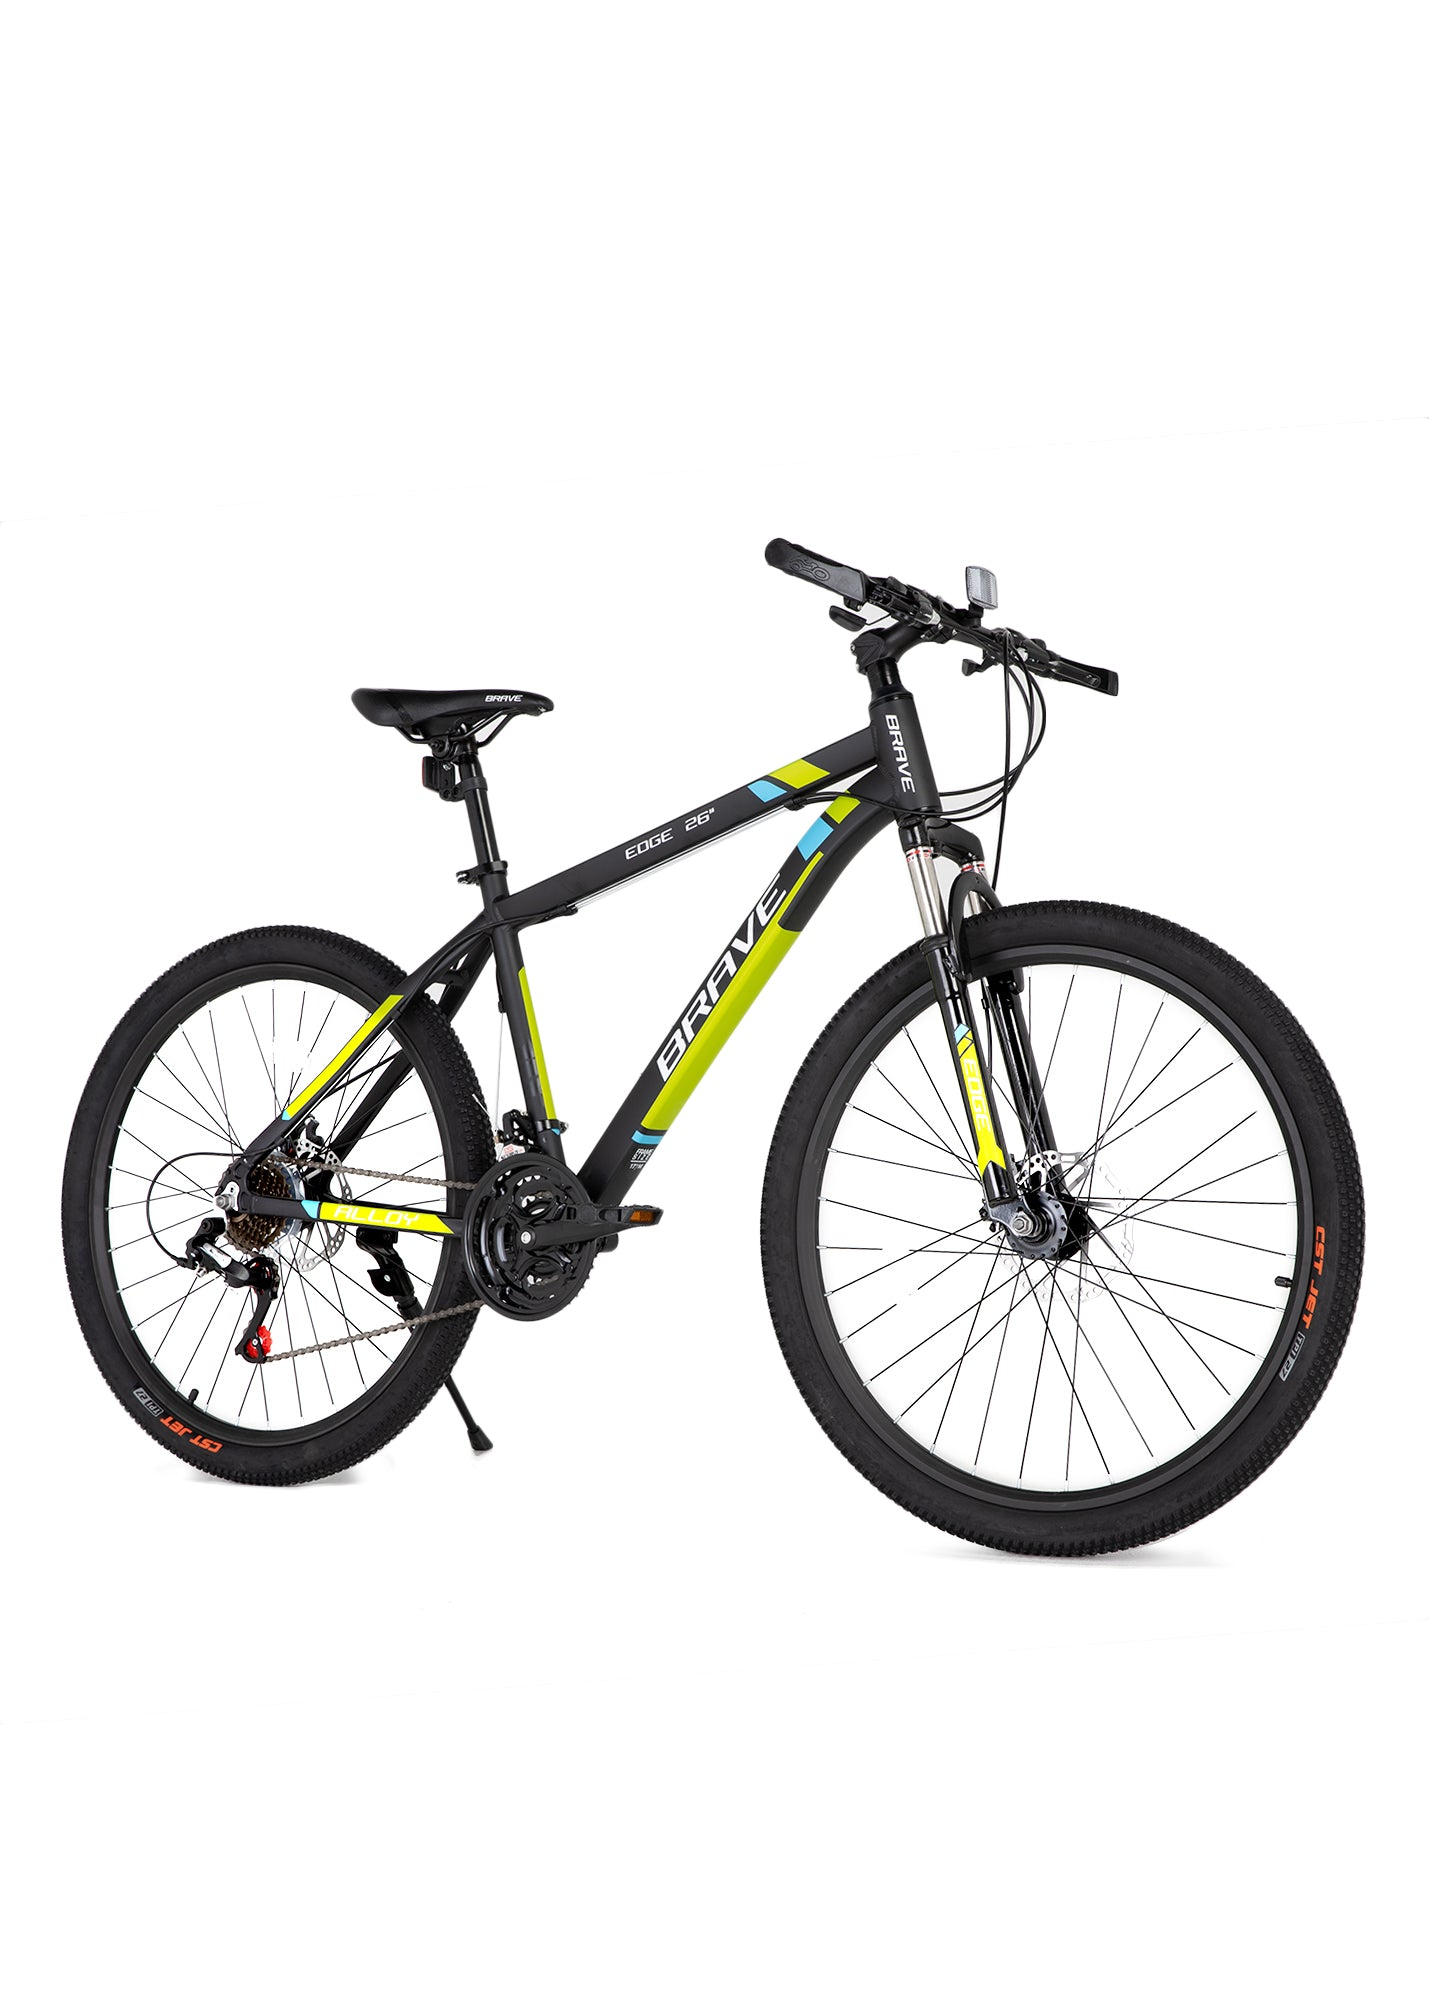 "Brave Edge Alloy Mountain Bike 26""(21-S)-Black/Blue/Green"